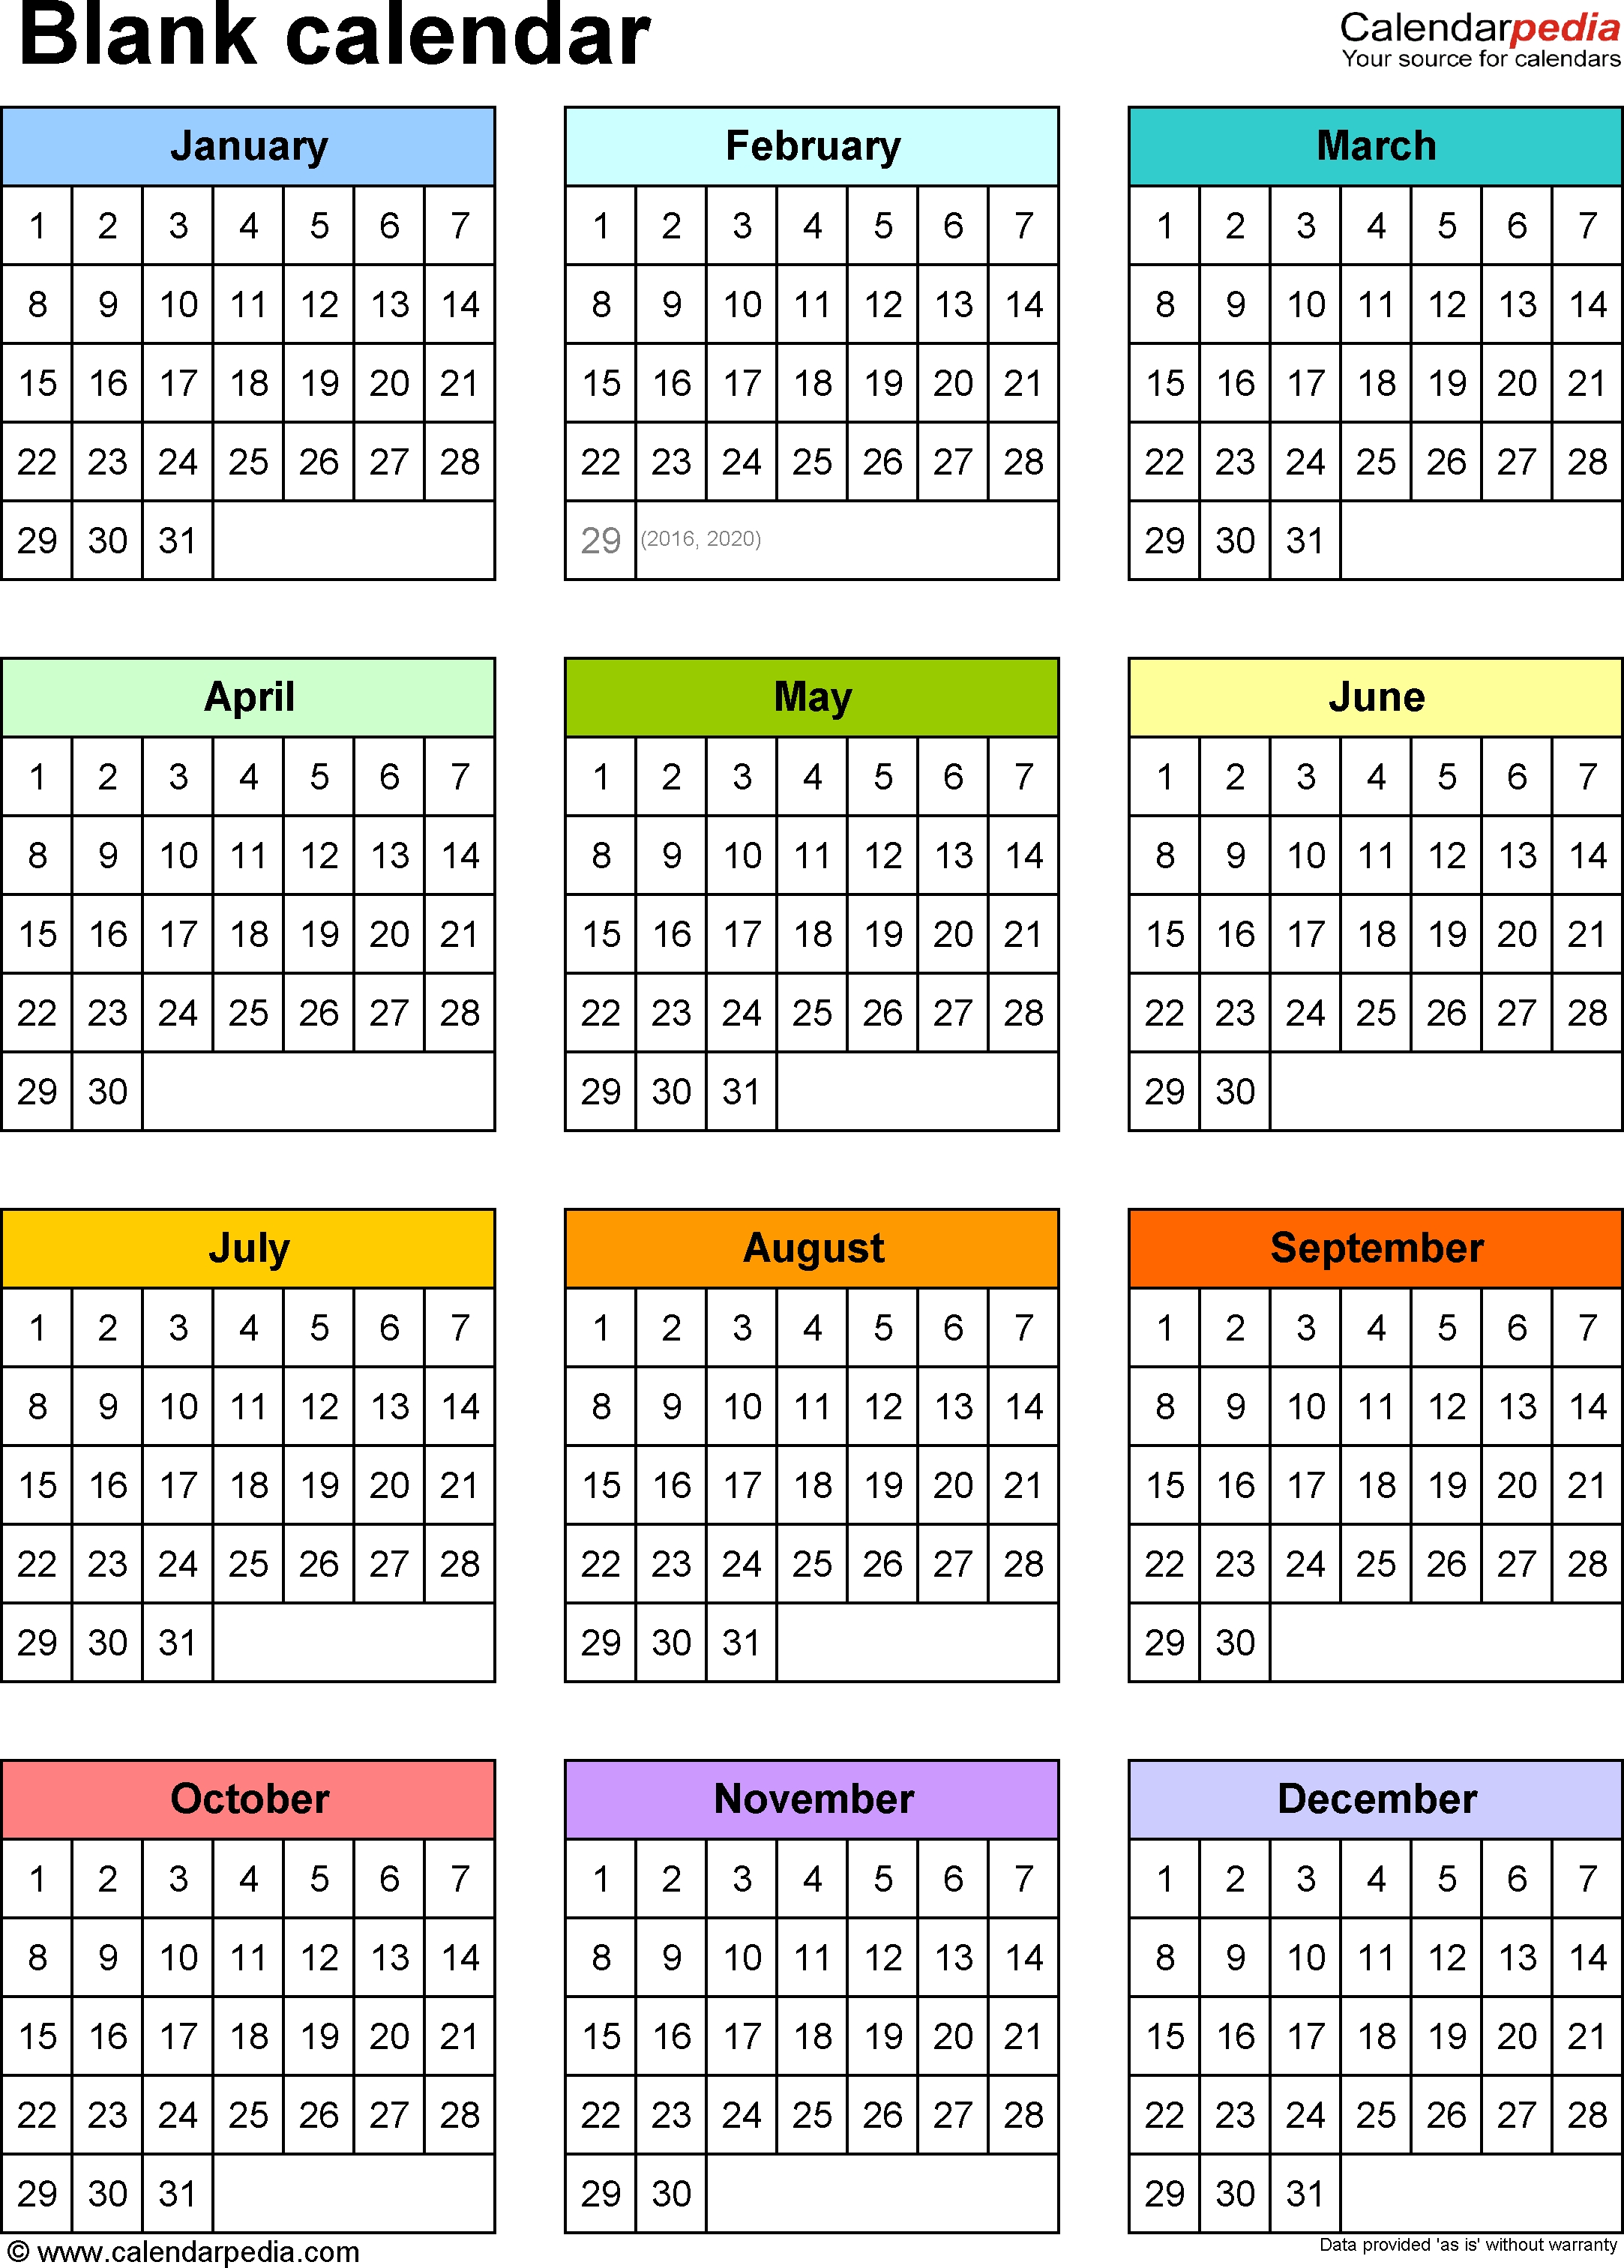 Blank Calendar - 9 Free Printable Microsoft Word Templates for Year At A Glance Printable Calendars